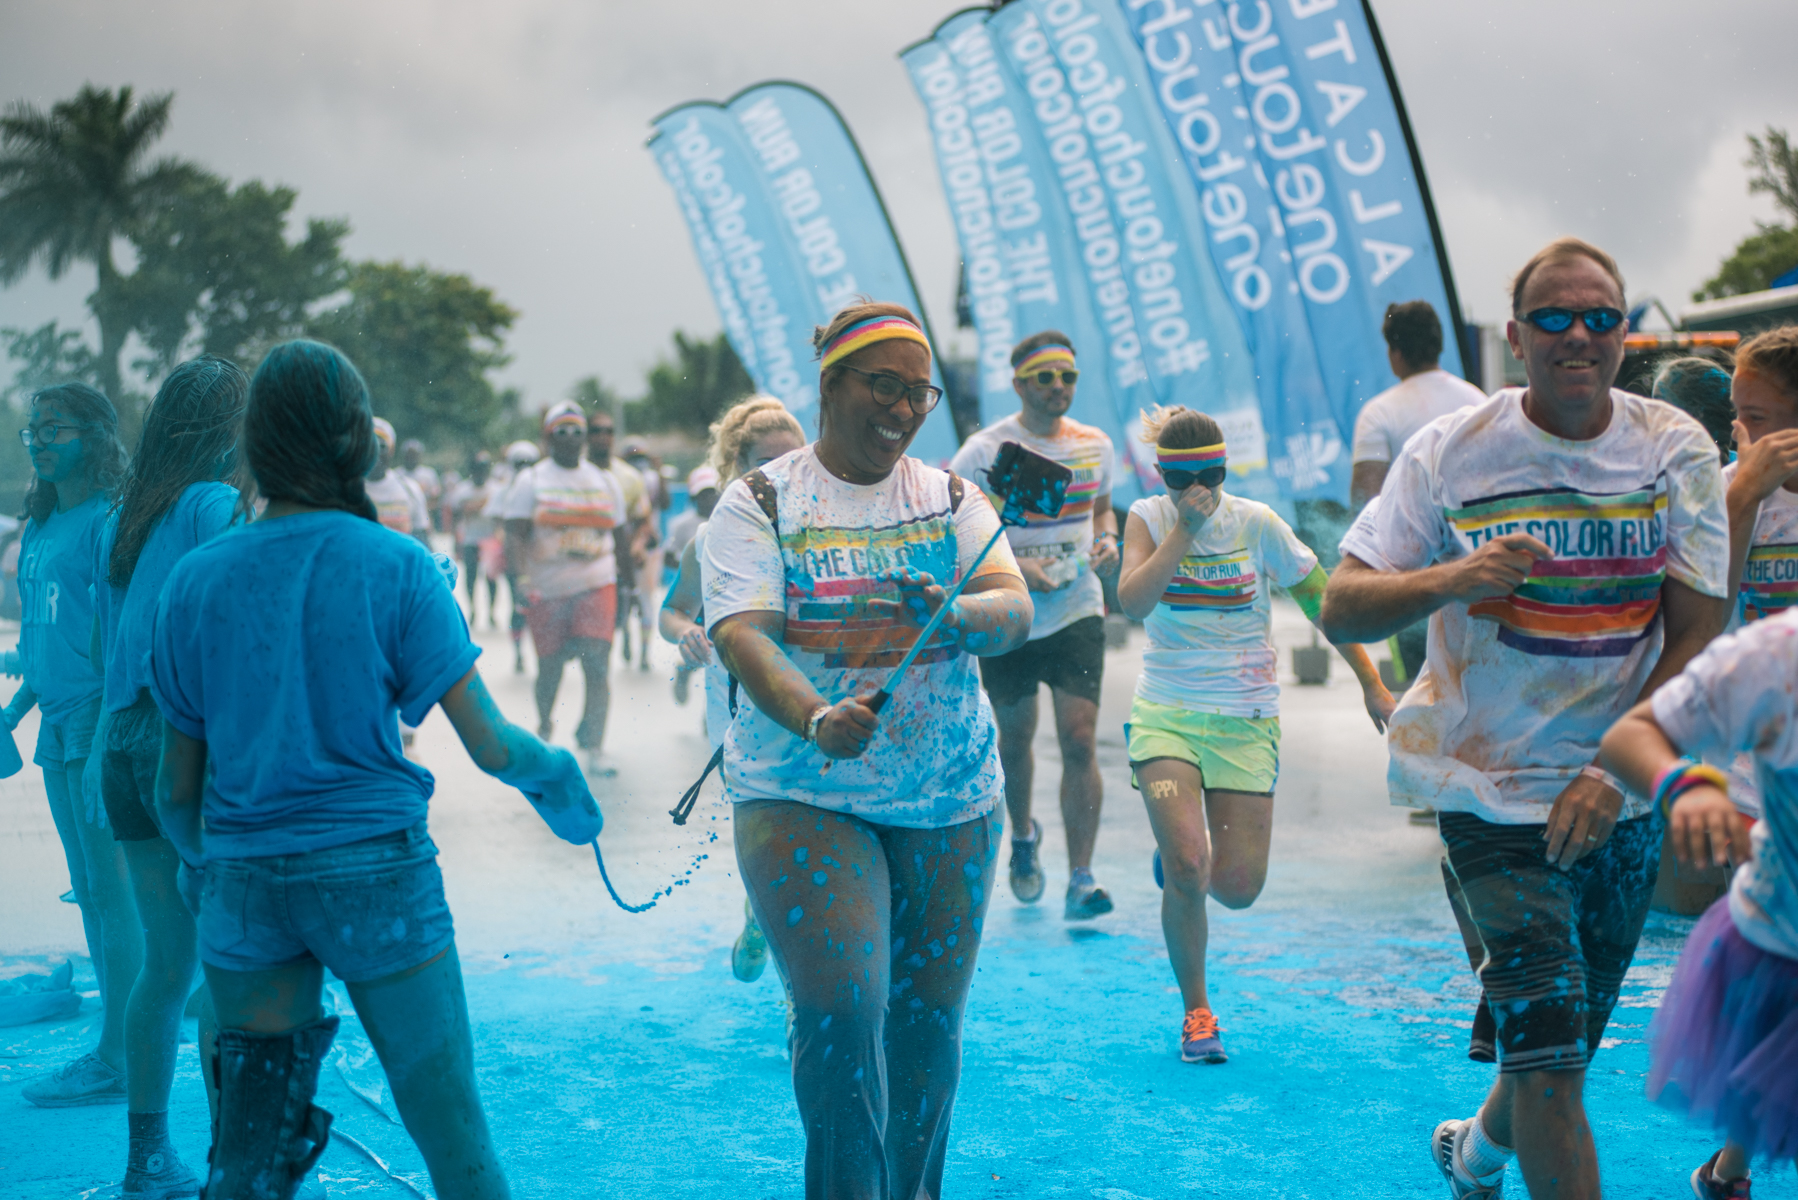 Color_Run-57.jpg